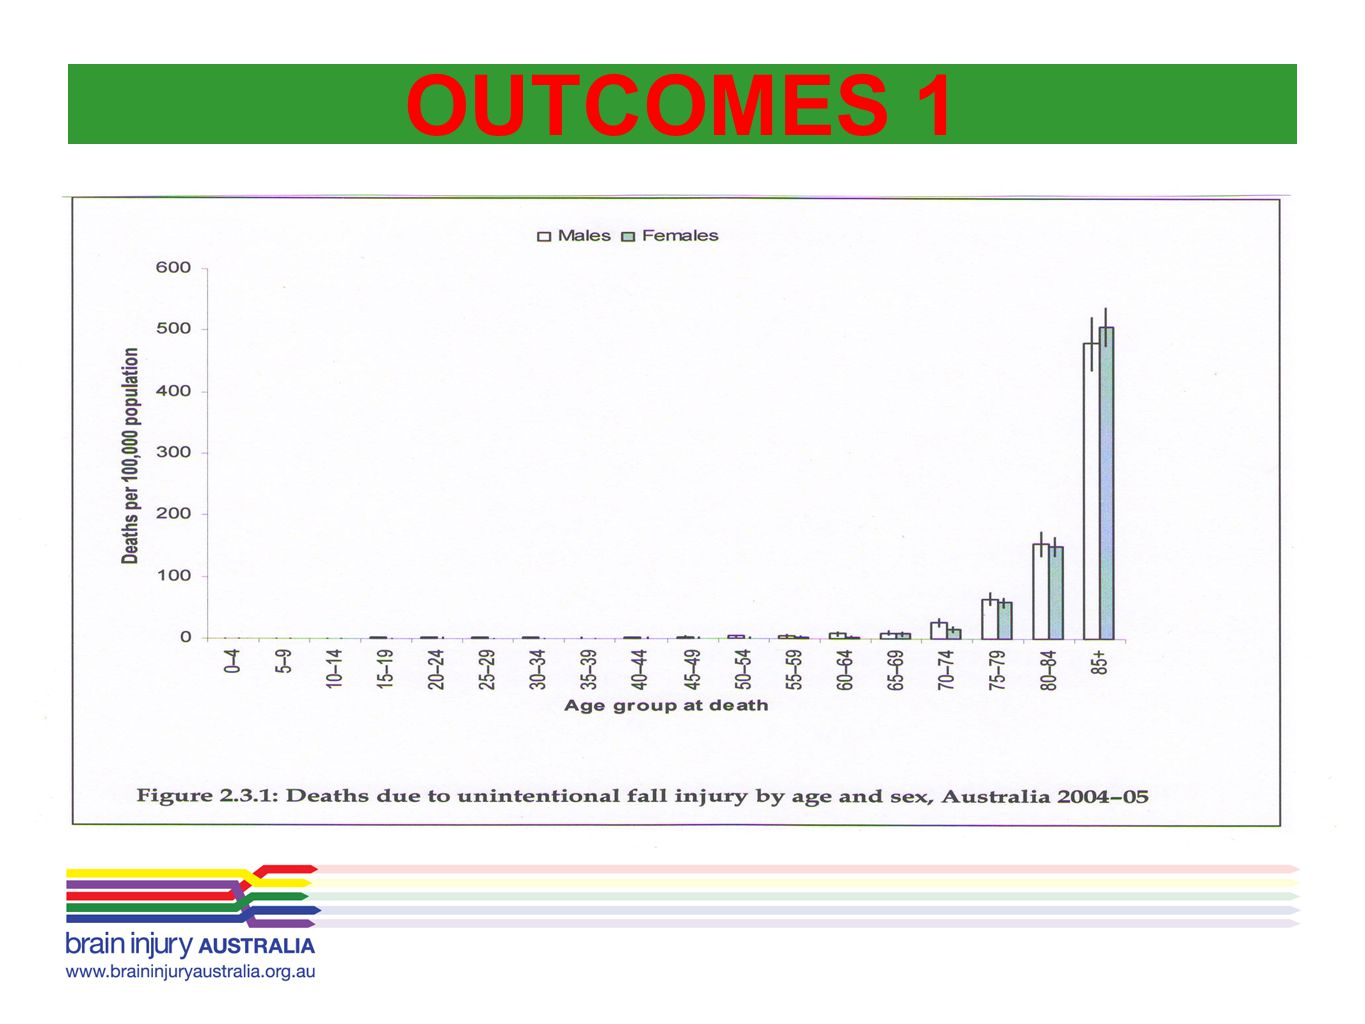 OUTCOMES 1 AIHW – recent Injury deaths, Australia 2004-05